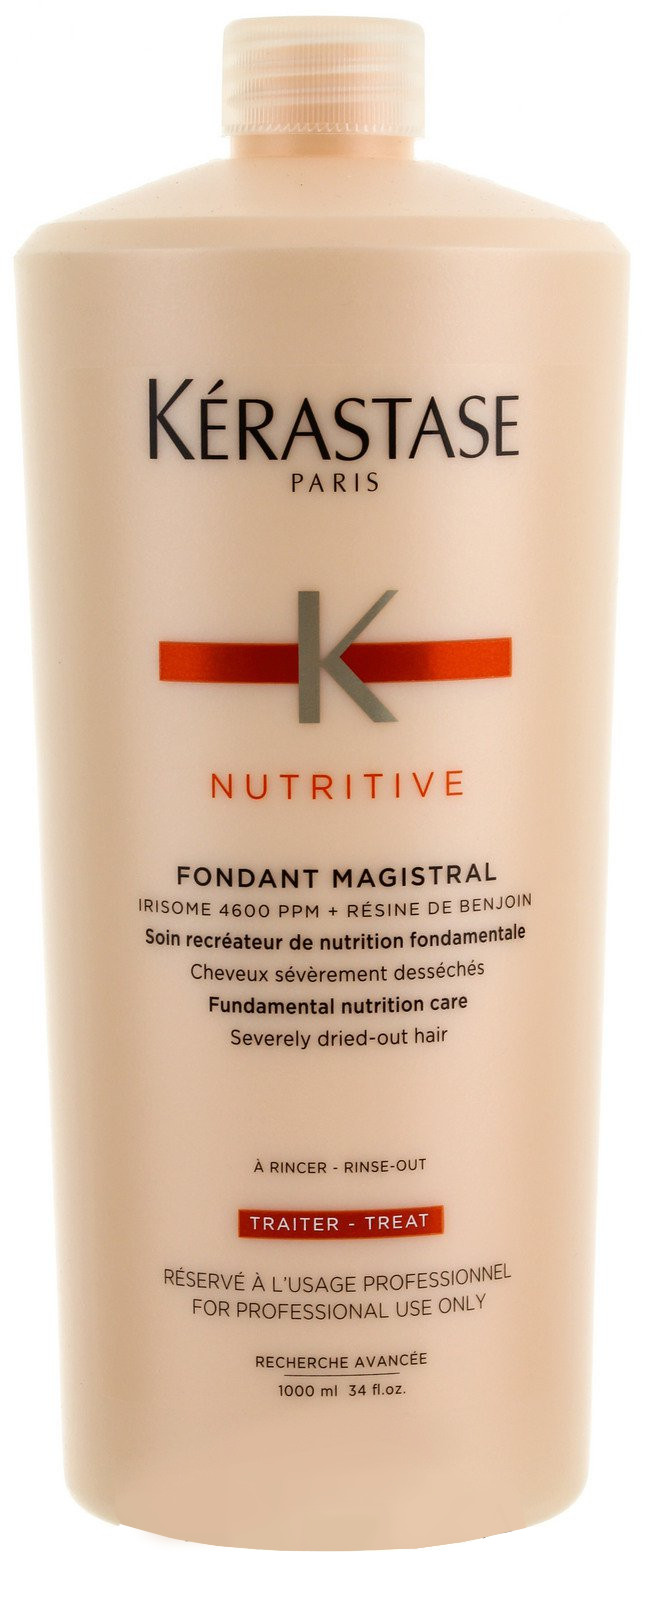 Kérastase Nutritive Fondant Magistral 1000 ml